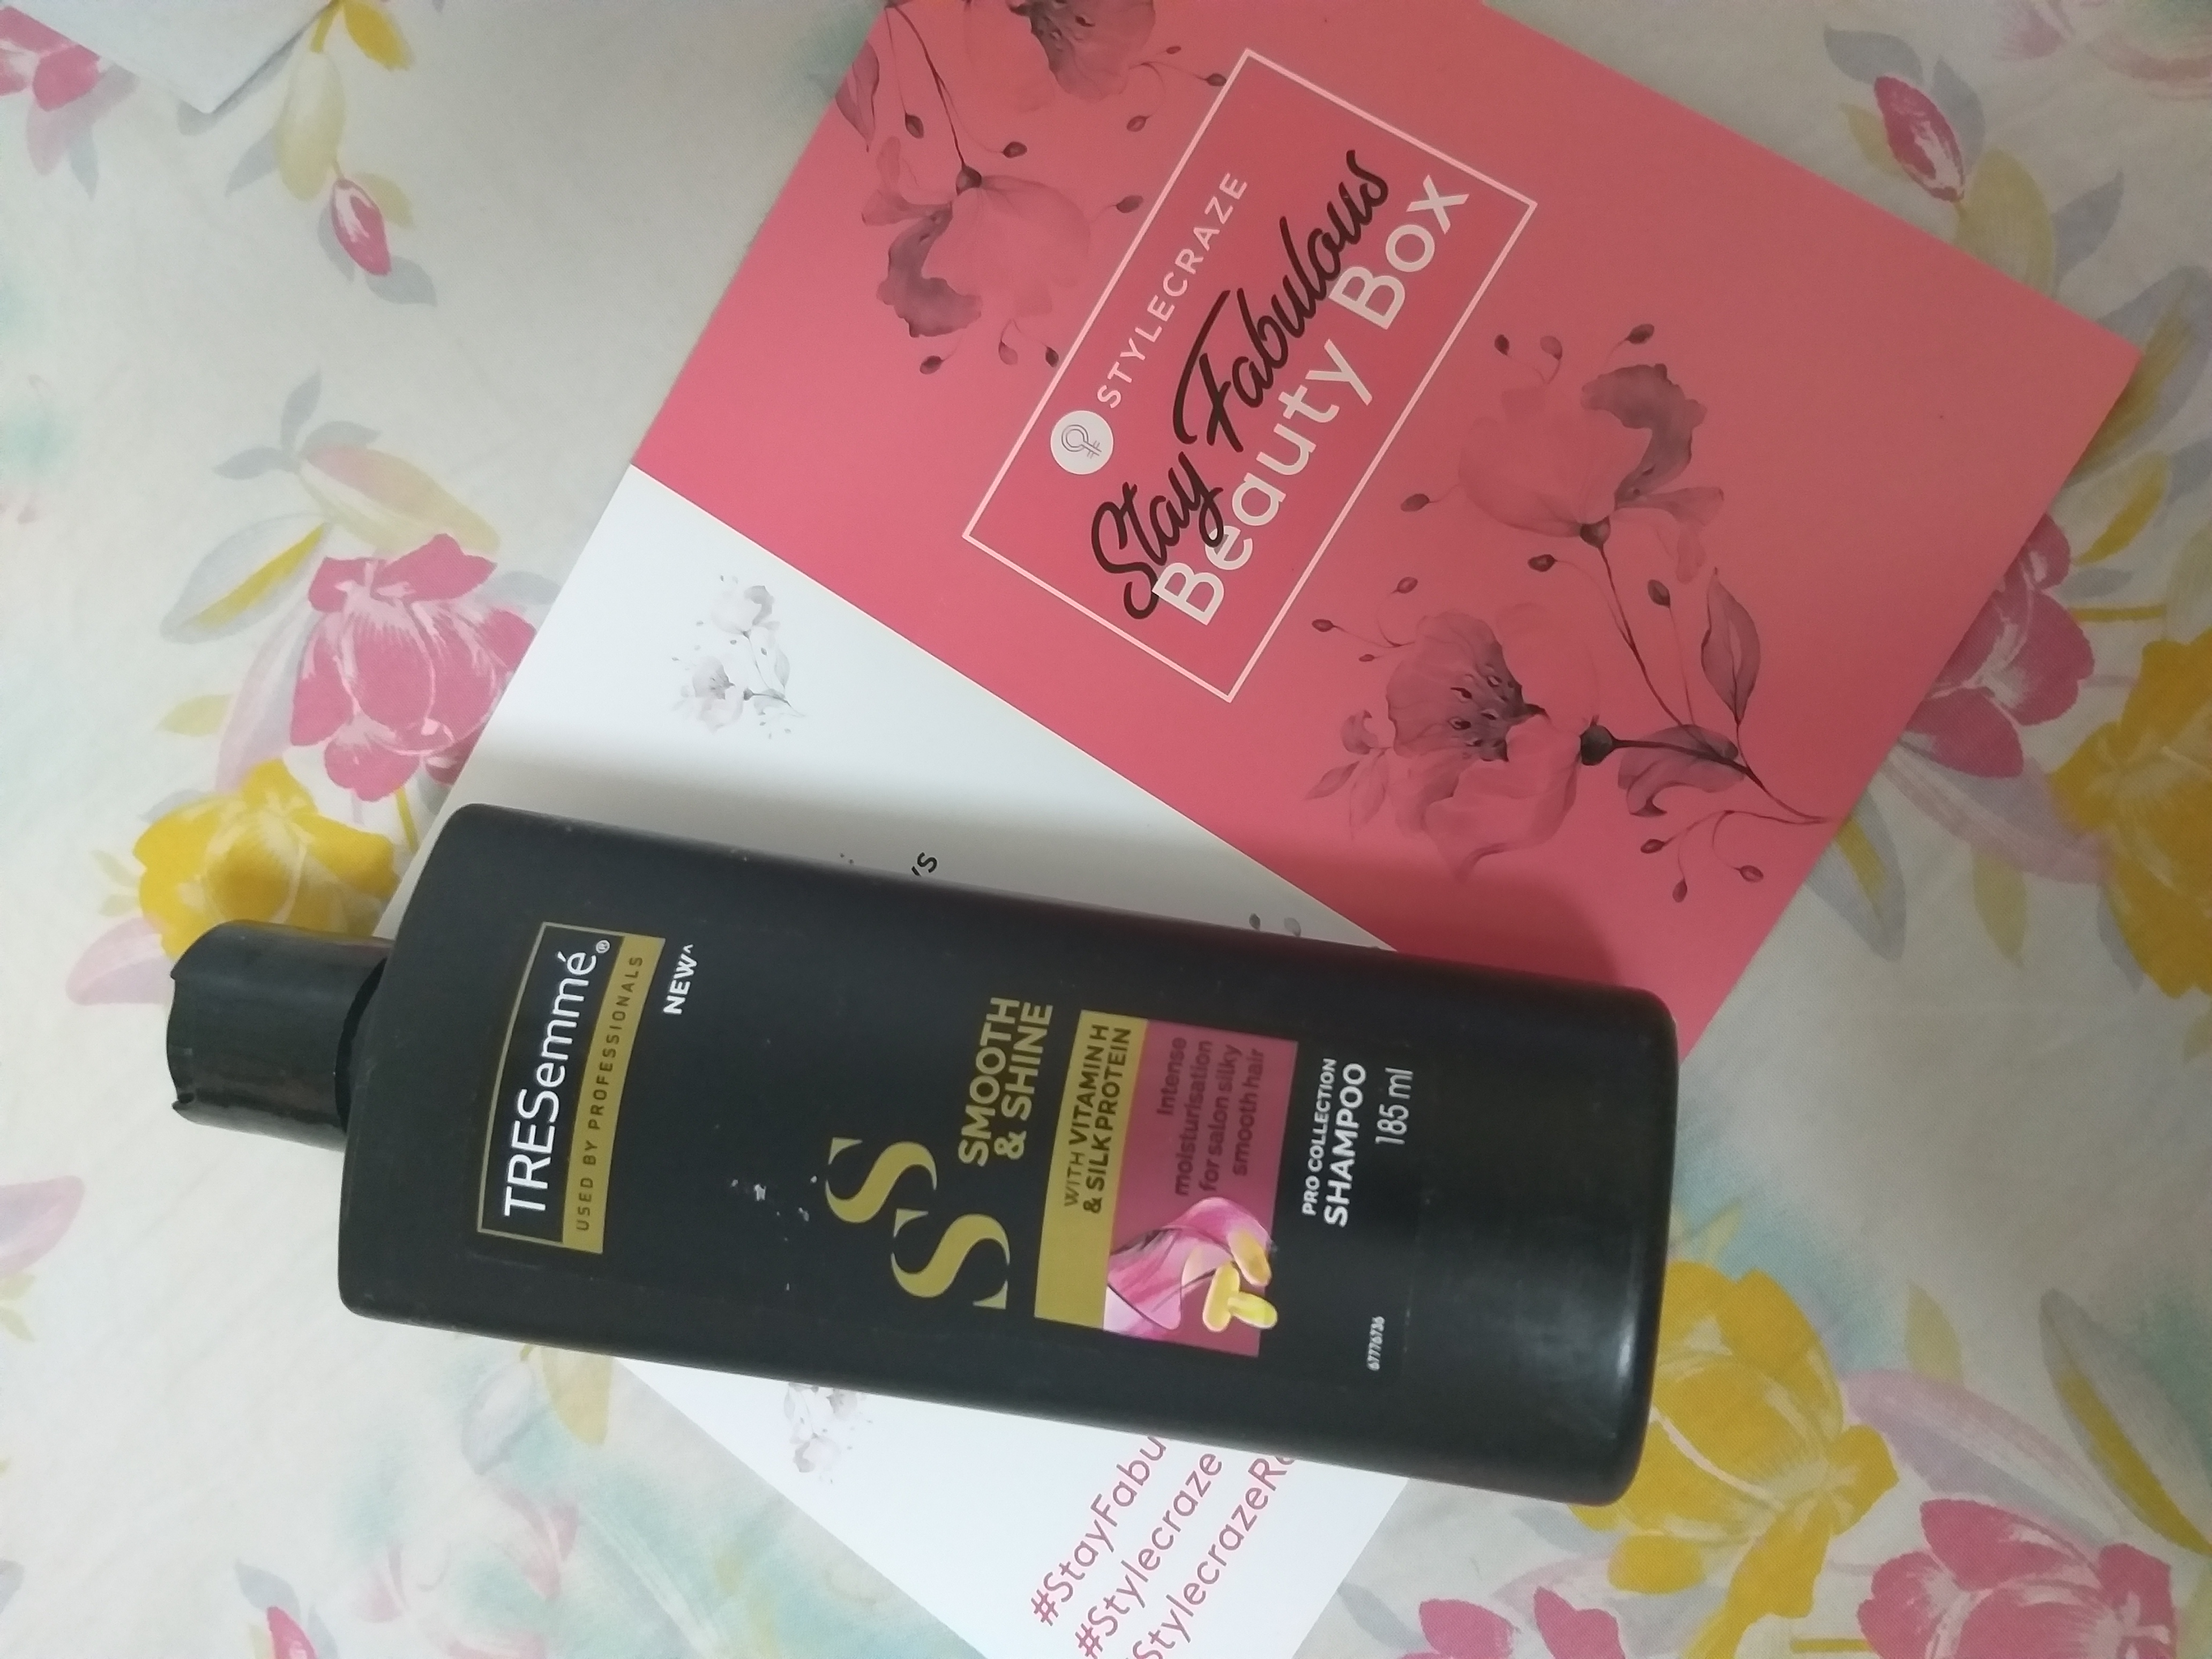 Tresemme Smooth And Shine Shampoo-Smoother and Softer hair indeed!-By beauty_mommies-2